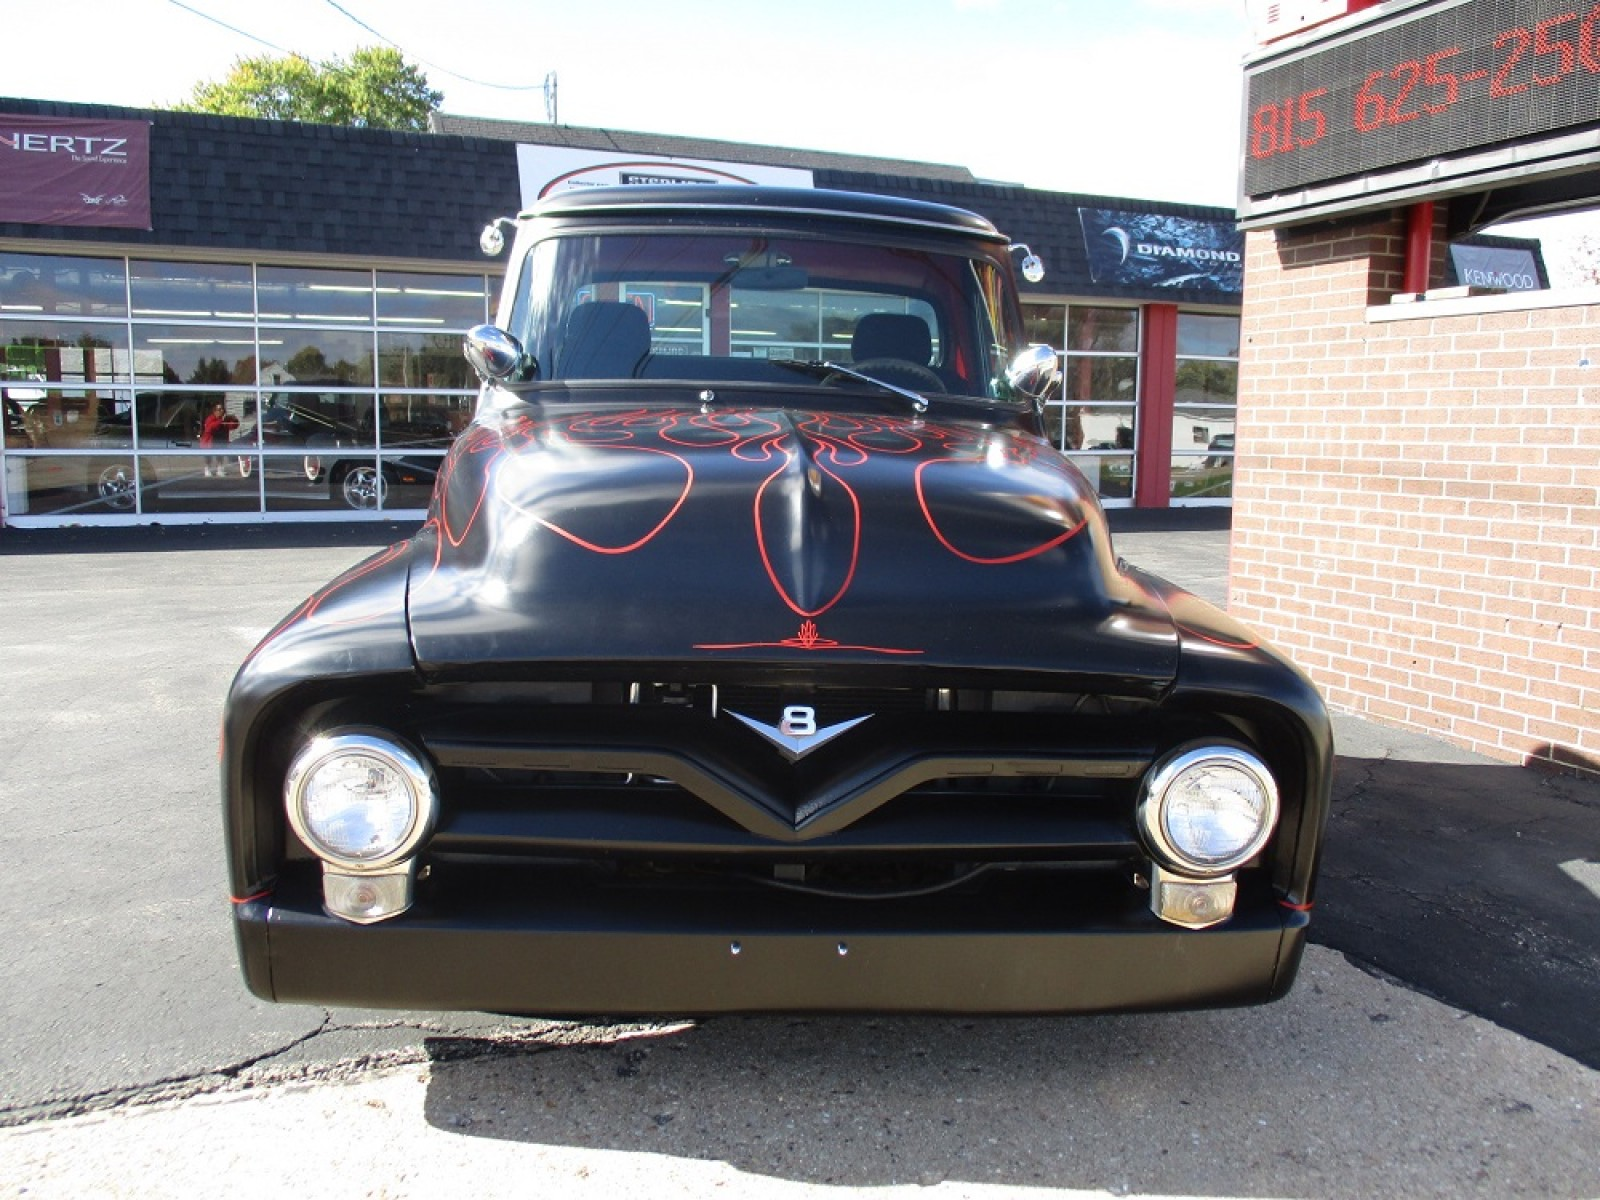 1955 Ford F100 Supercharged 302 Street Rod For Sale On Ryno Classifieds Headliner